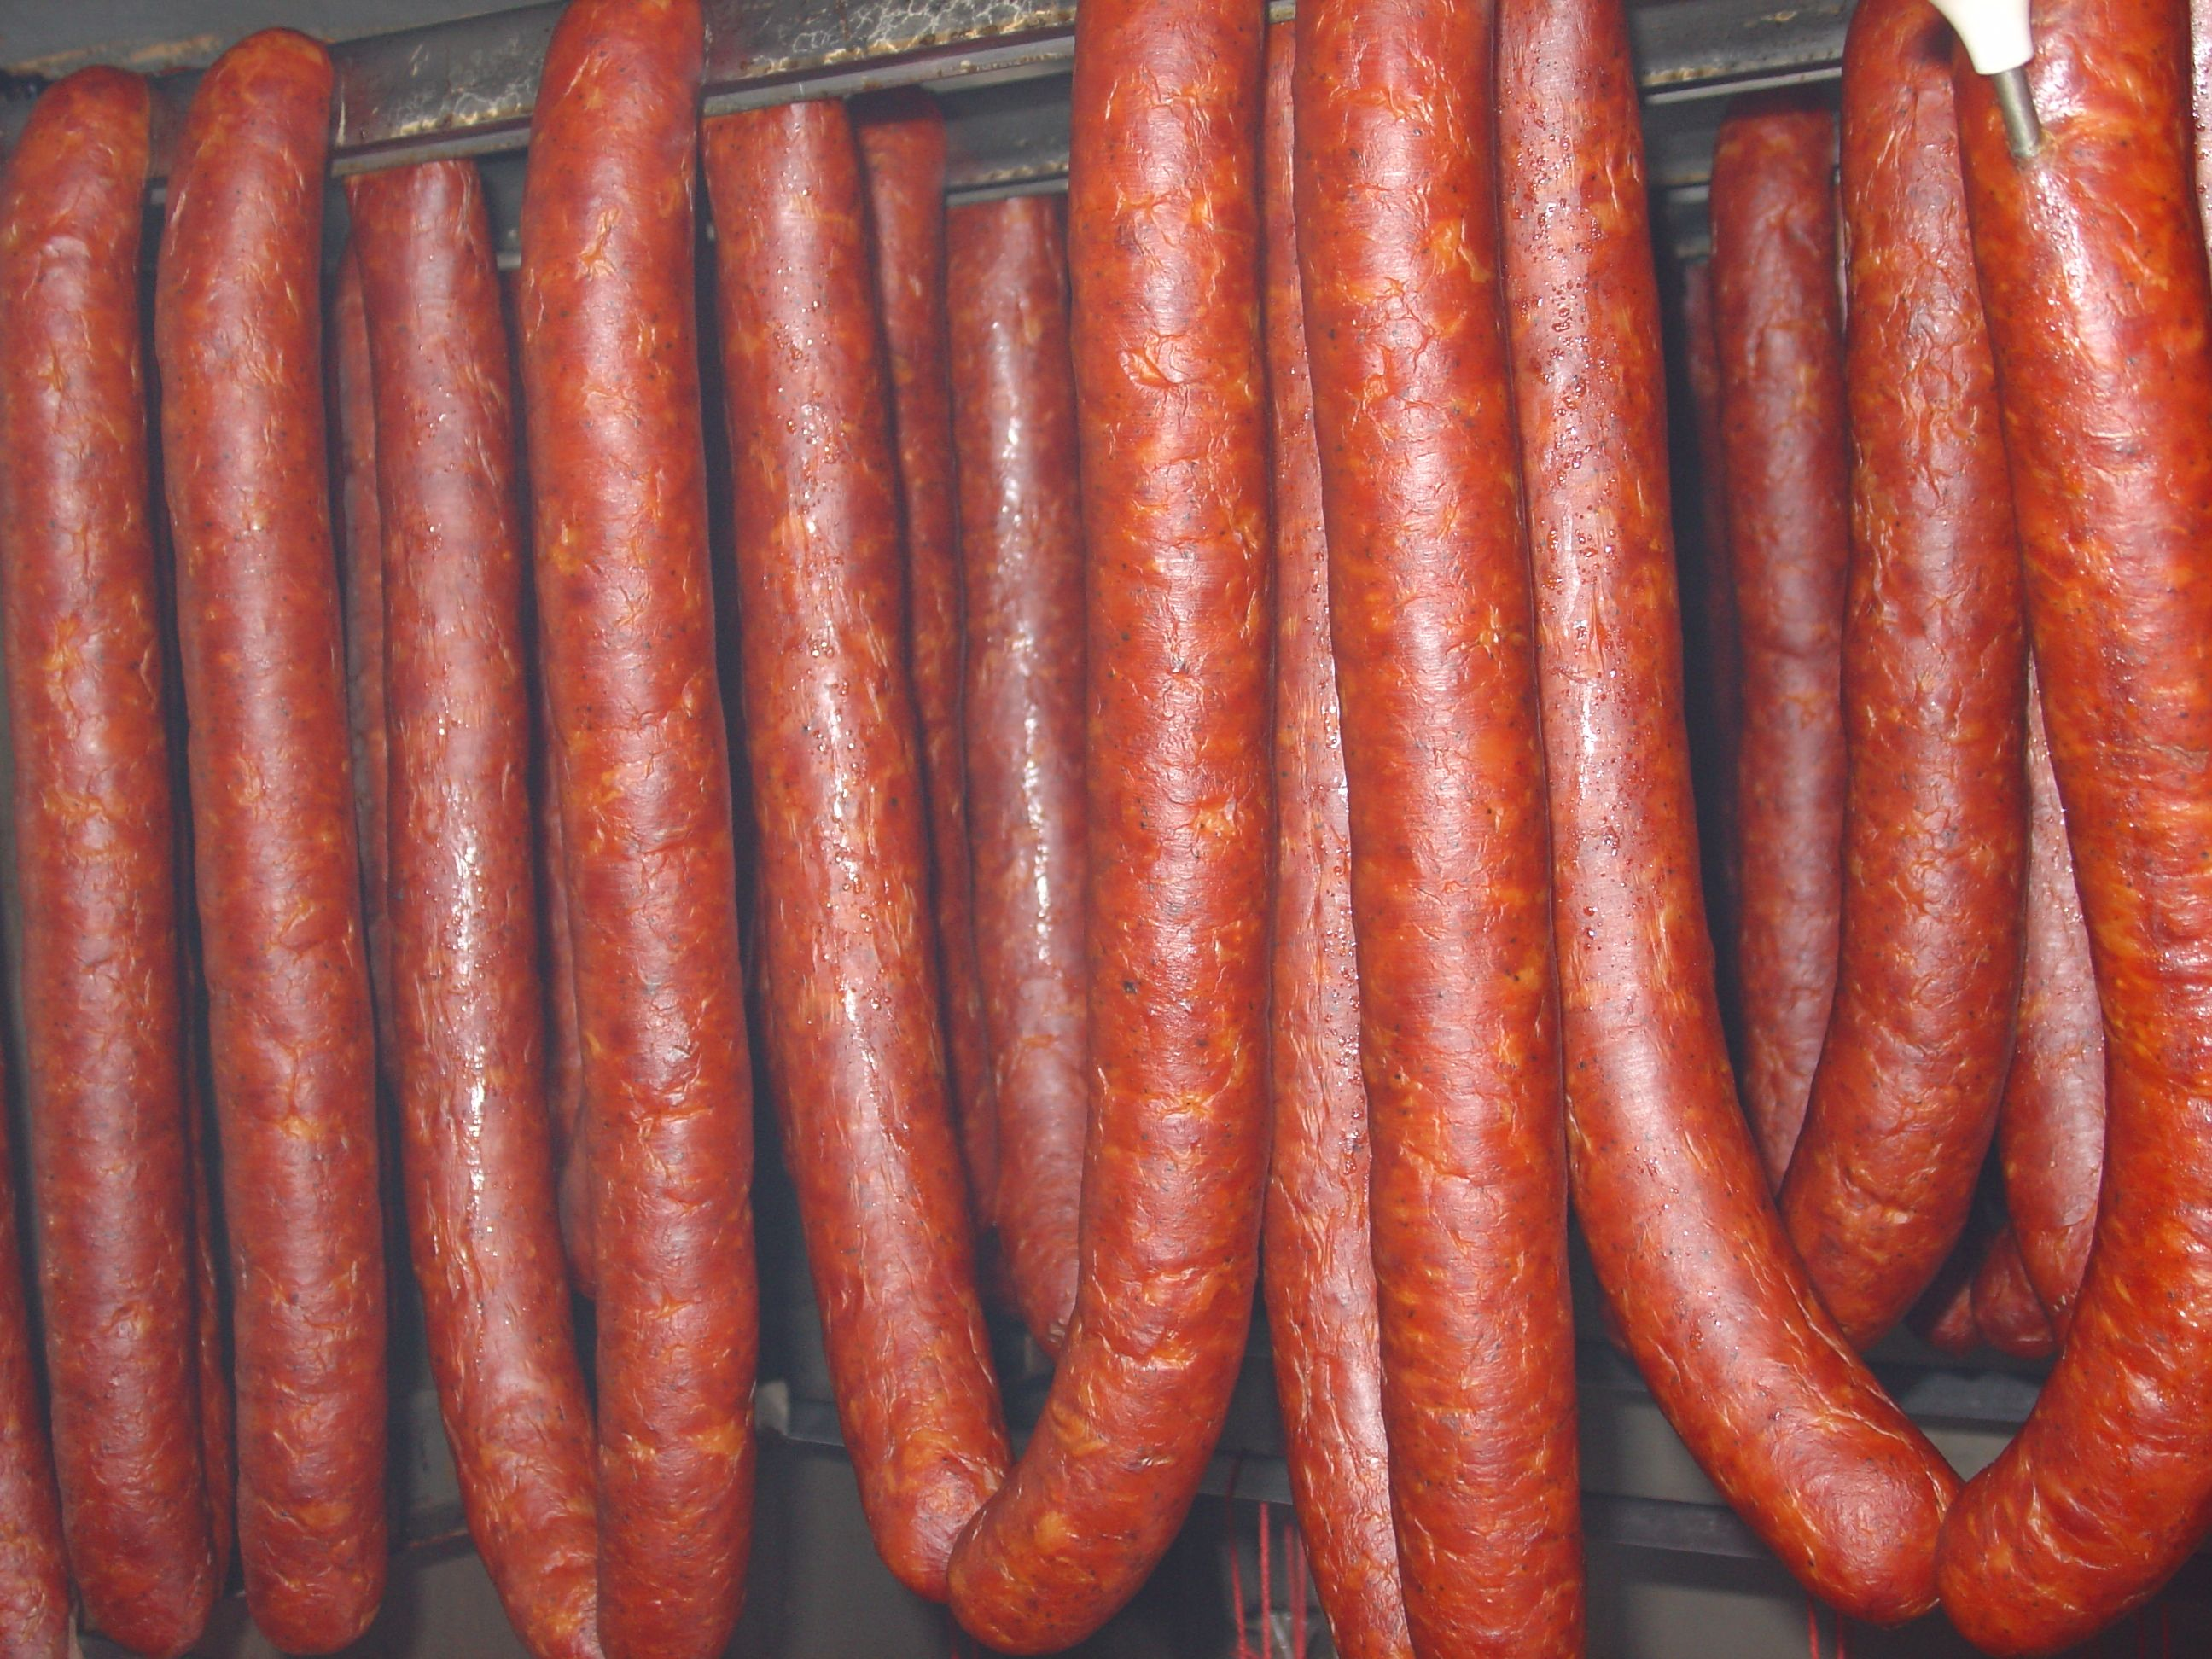 Paprika Sausage A double smoked sausage. Great in scrambled eggs, on kabobs, or even just sliced up. One of our best sellers.